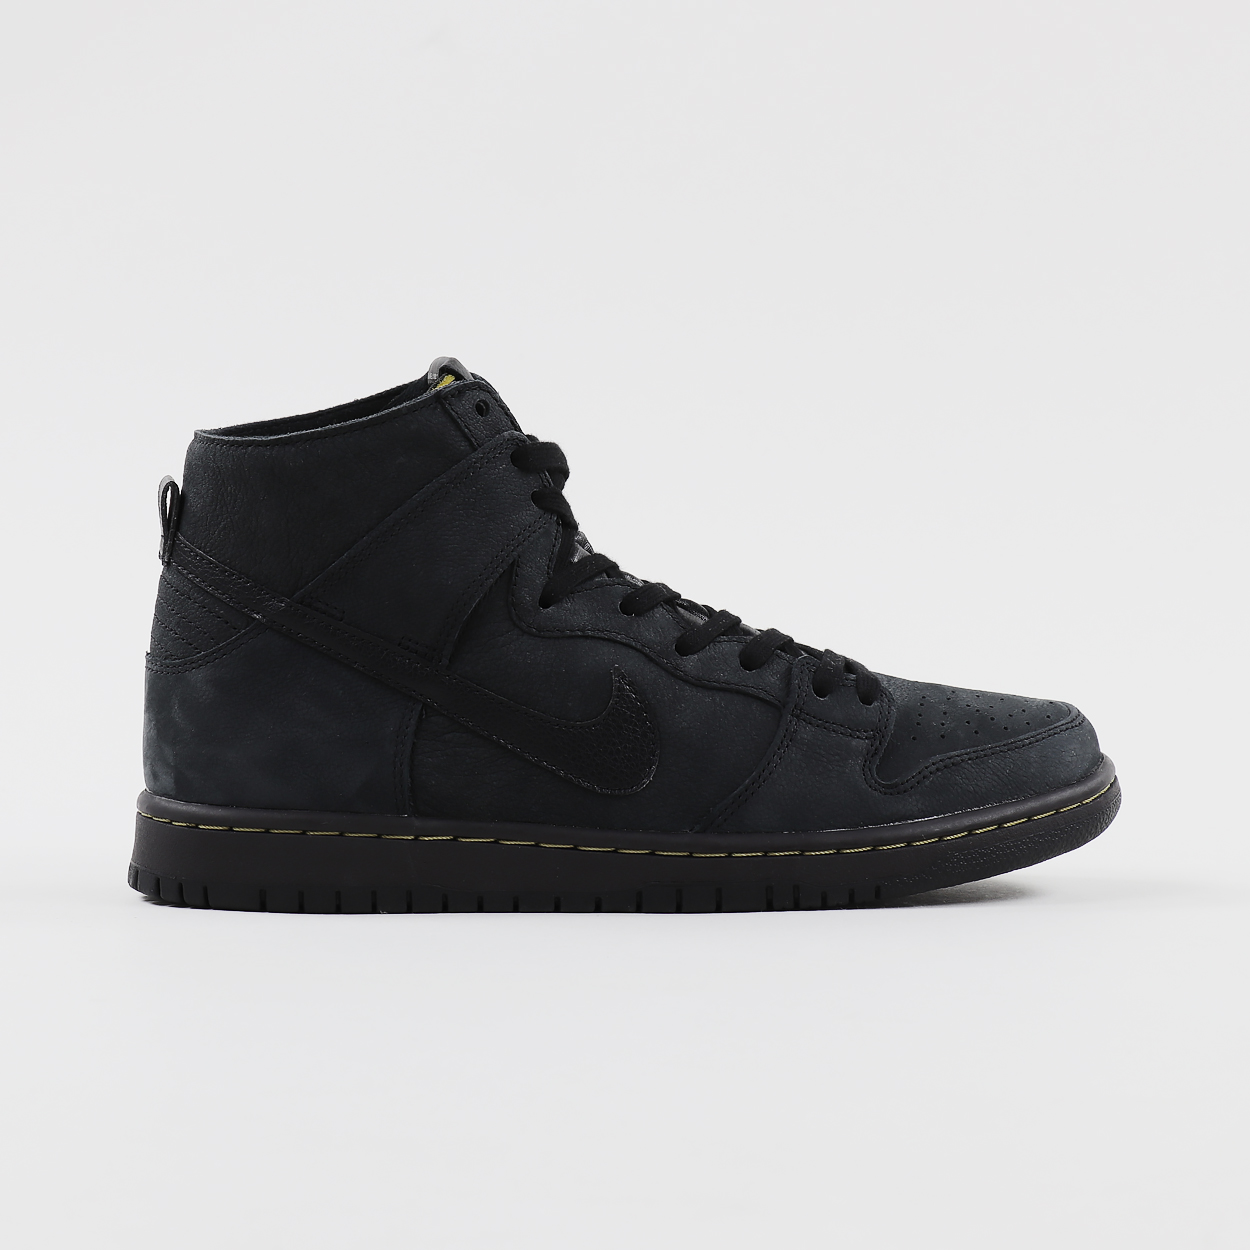 new concept b1730 55d94 Nike SB Dunk High Pro Deconstructed Premium Shoes Black Velvet Brown